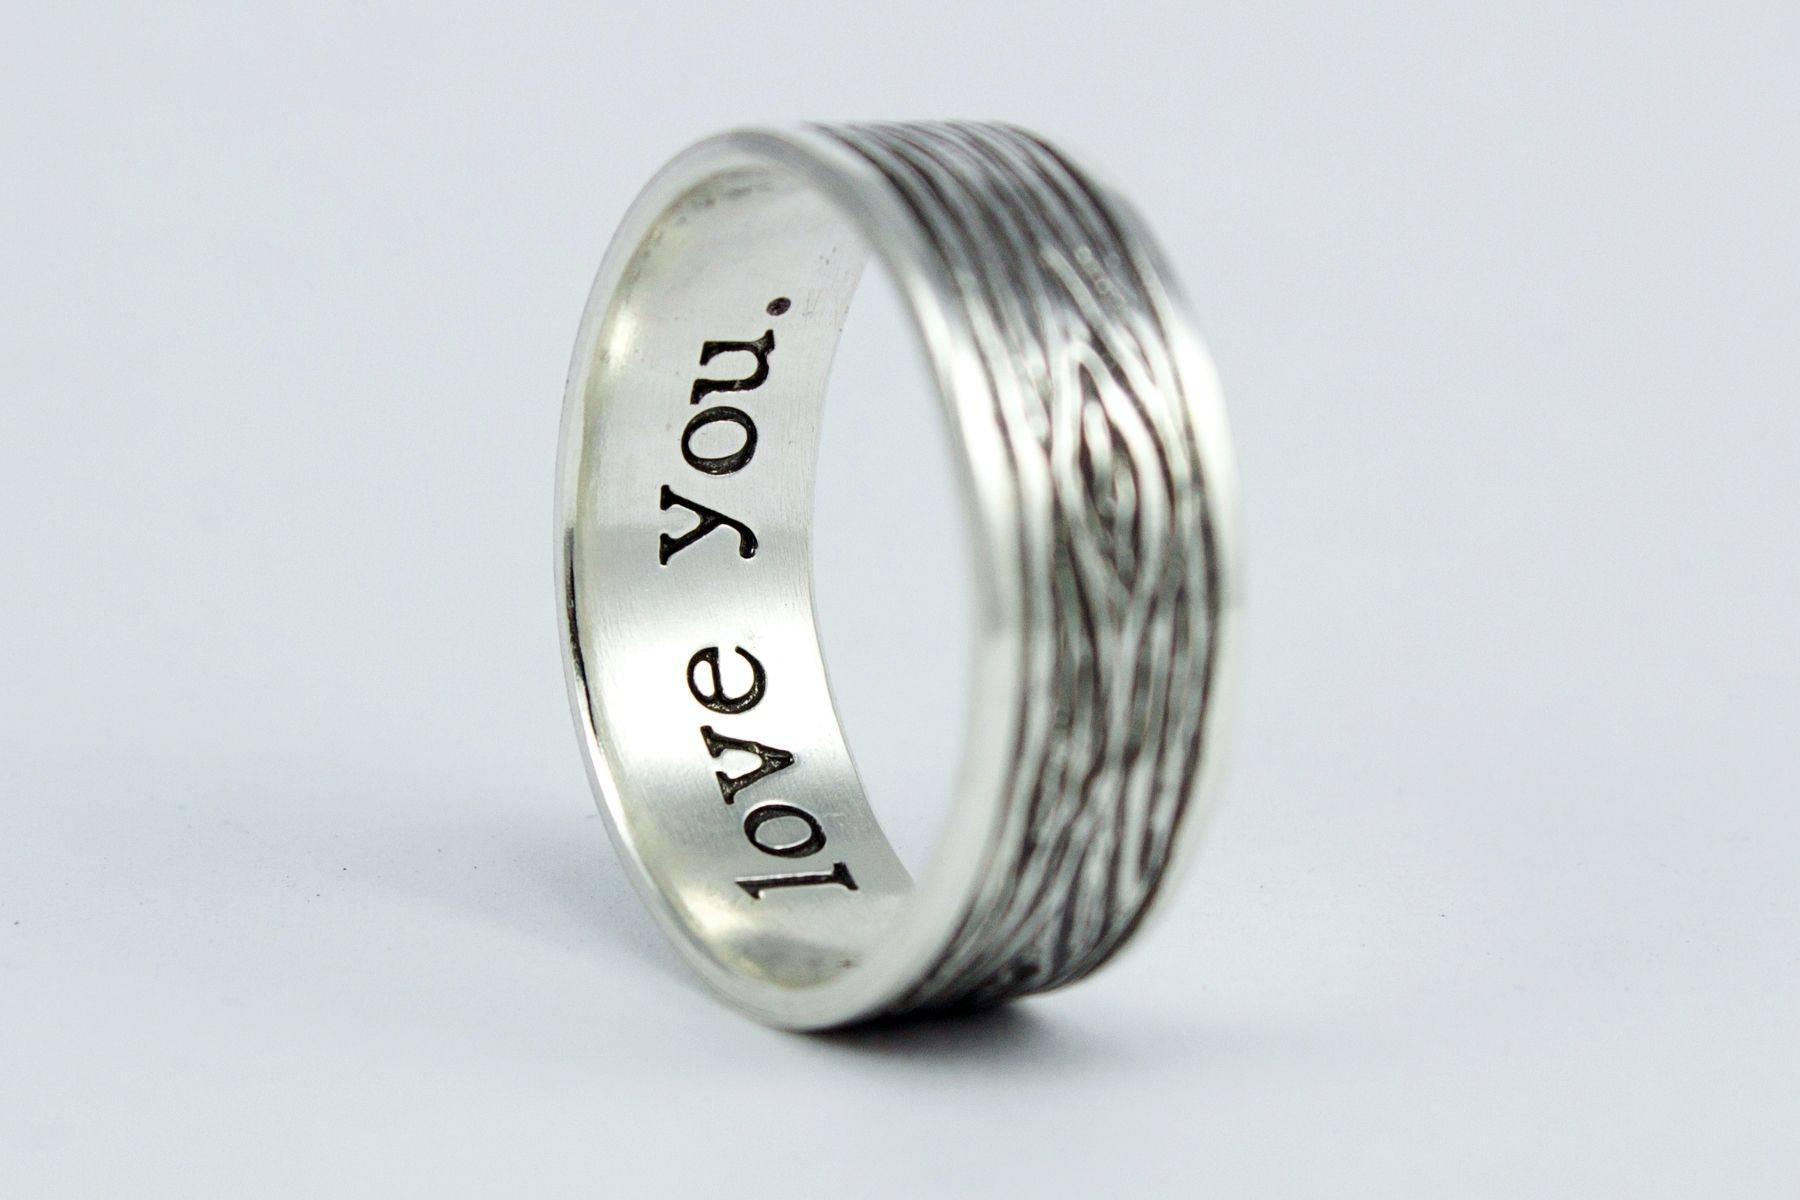 Hand Crafted Men's Rustic Sterling Silver Woodgrain Wedding Ring Pertaining To Silver Mens Wedding Rings (View 12 of 15)